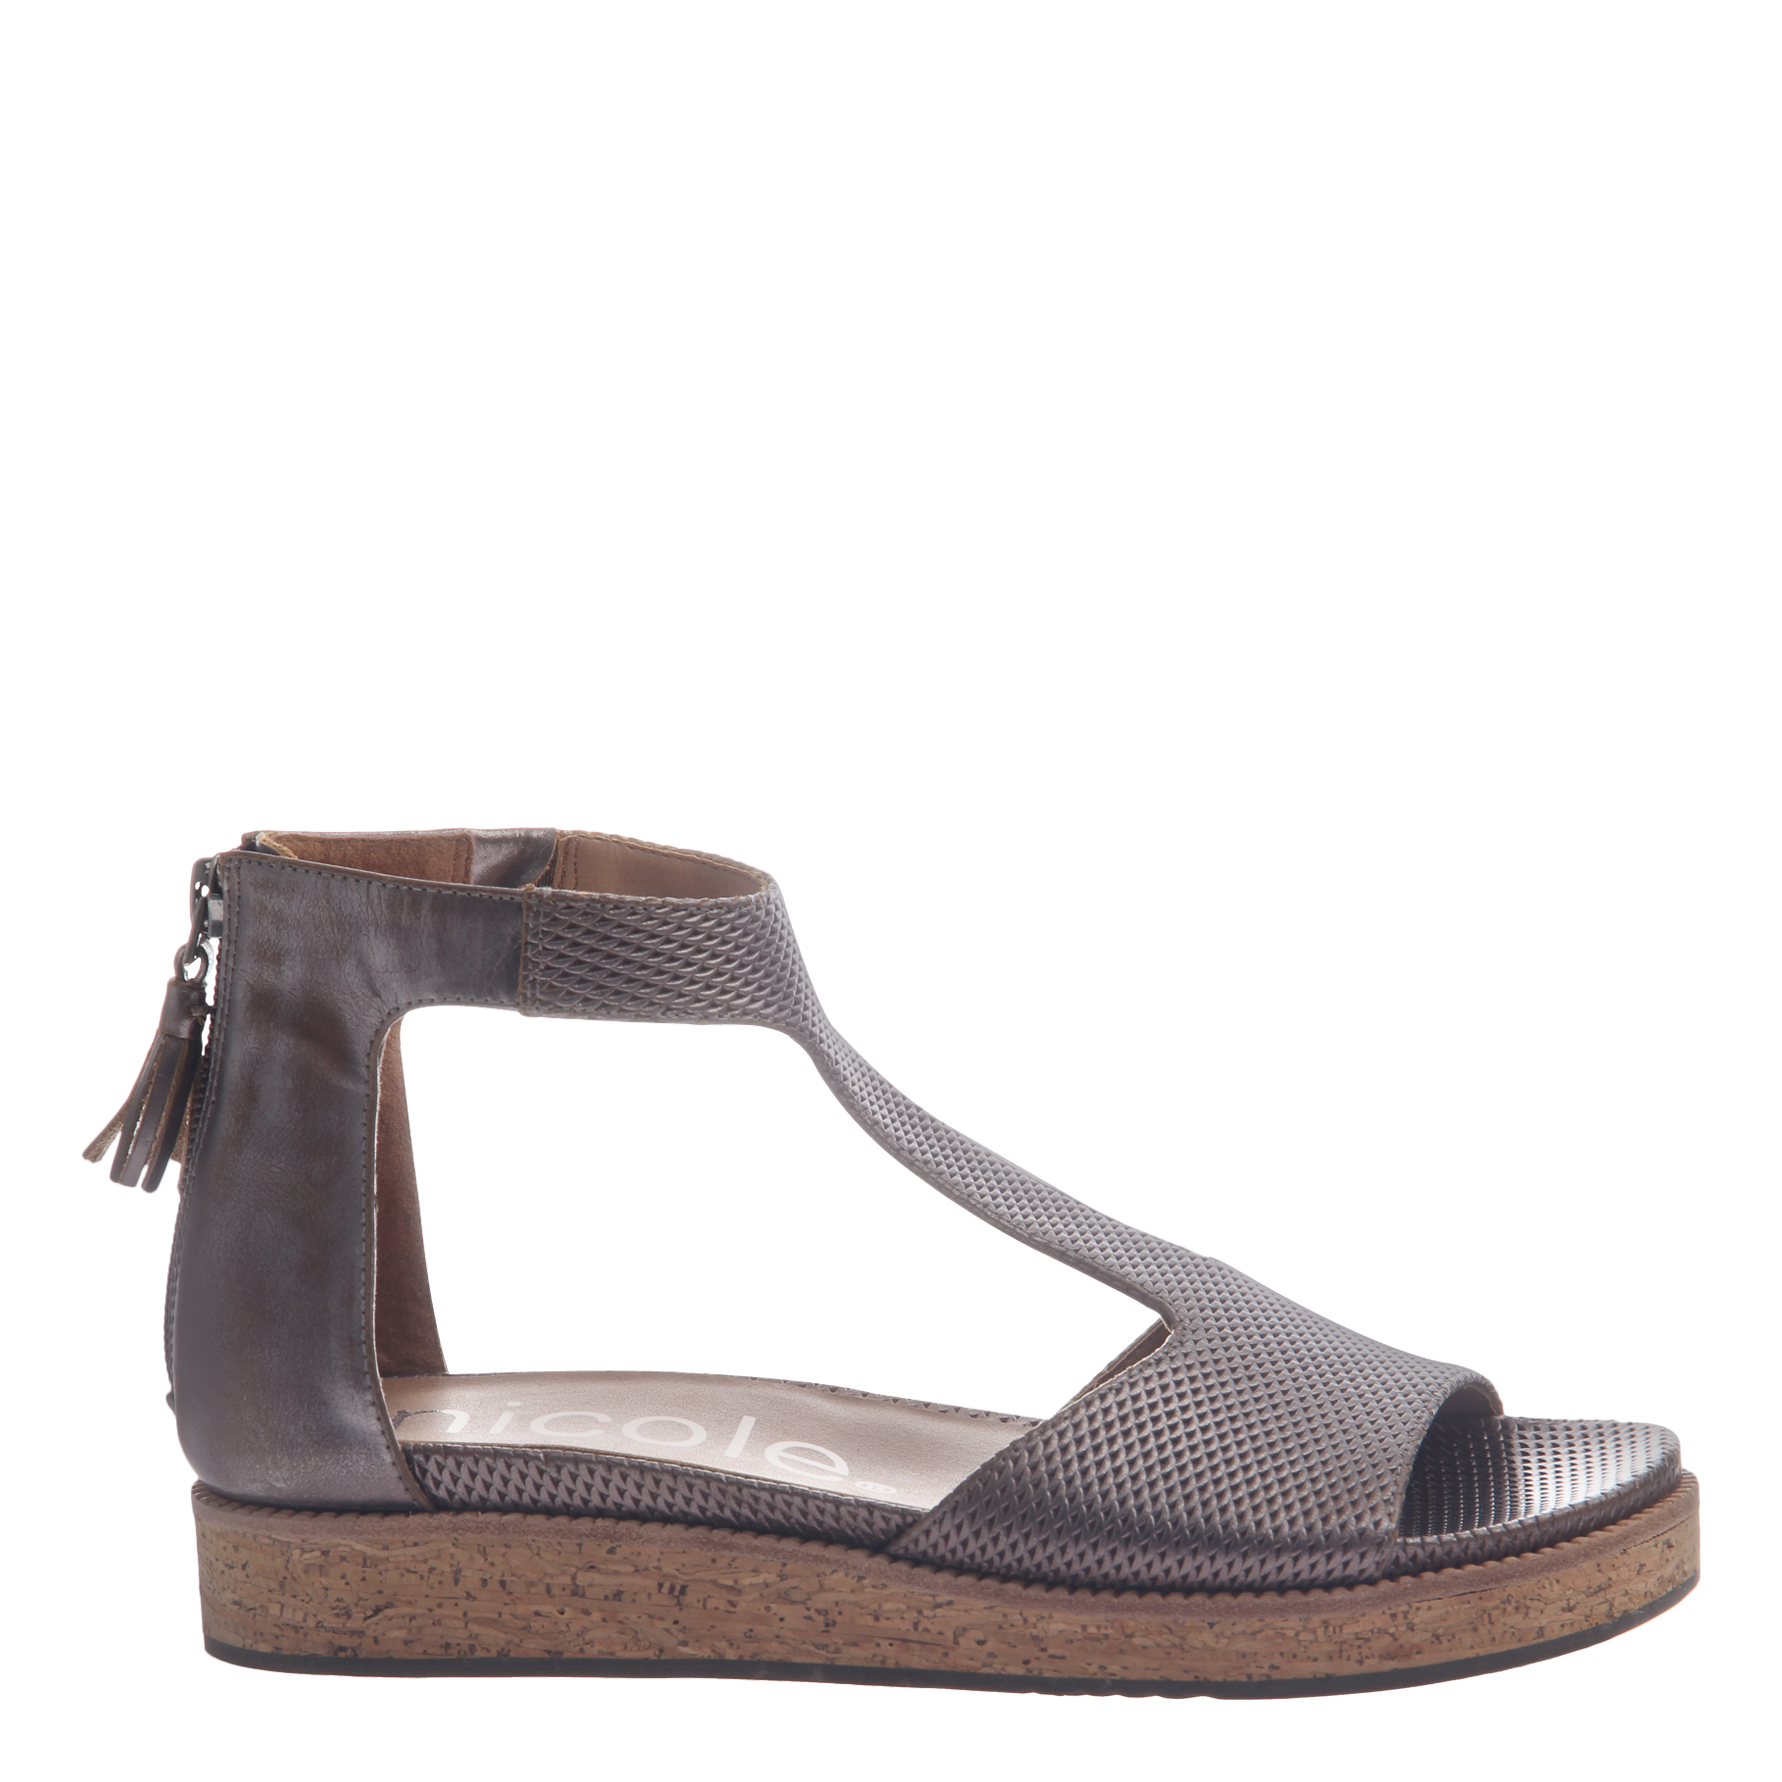 Nicole womens flat sandal lilou in pewter side view